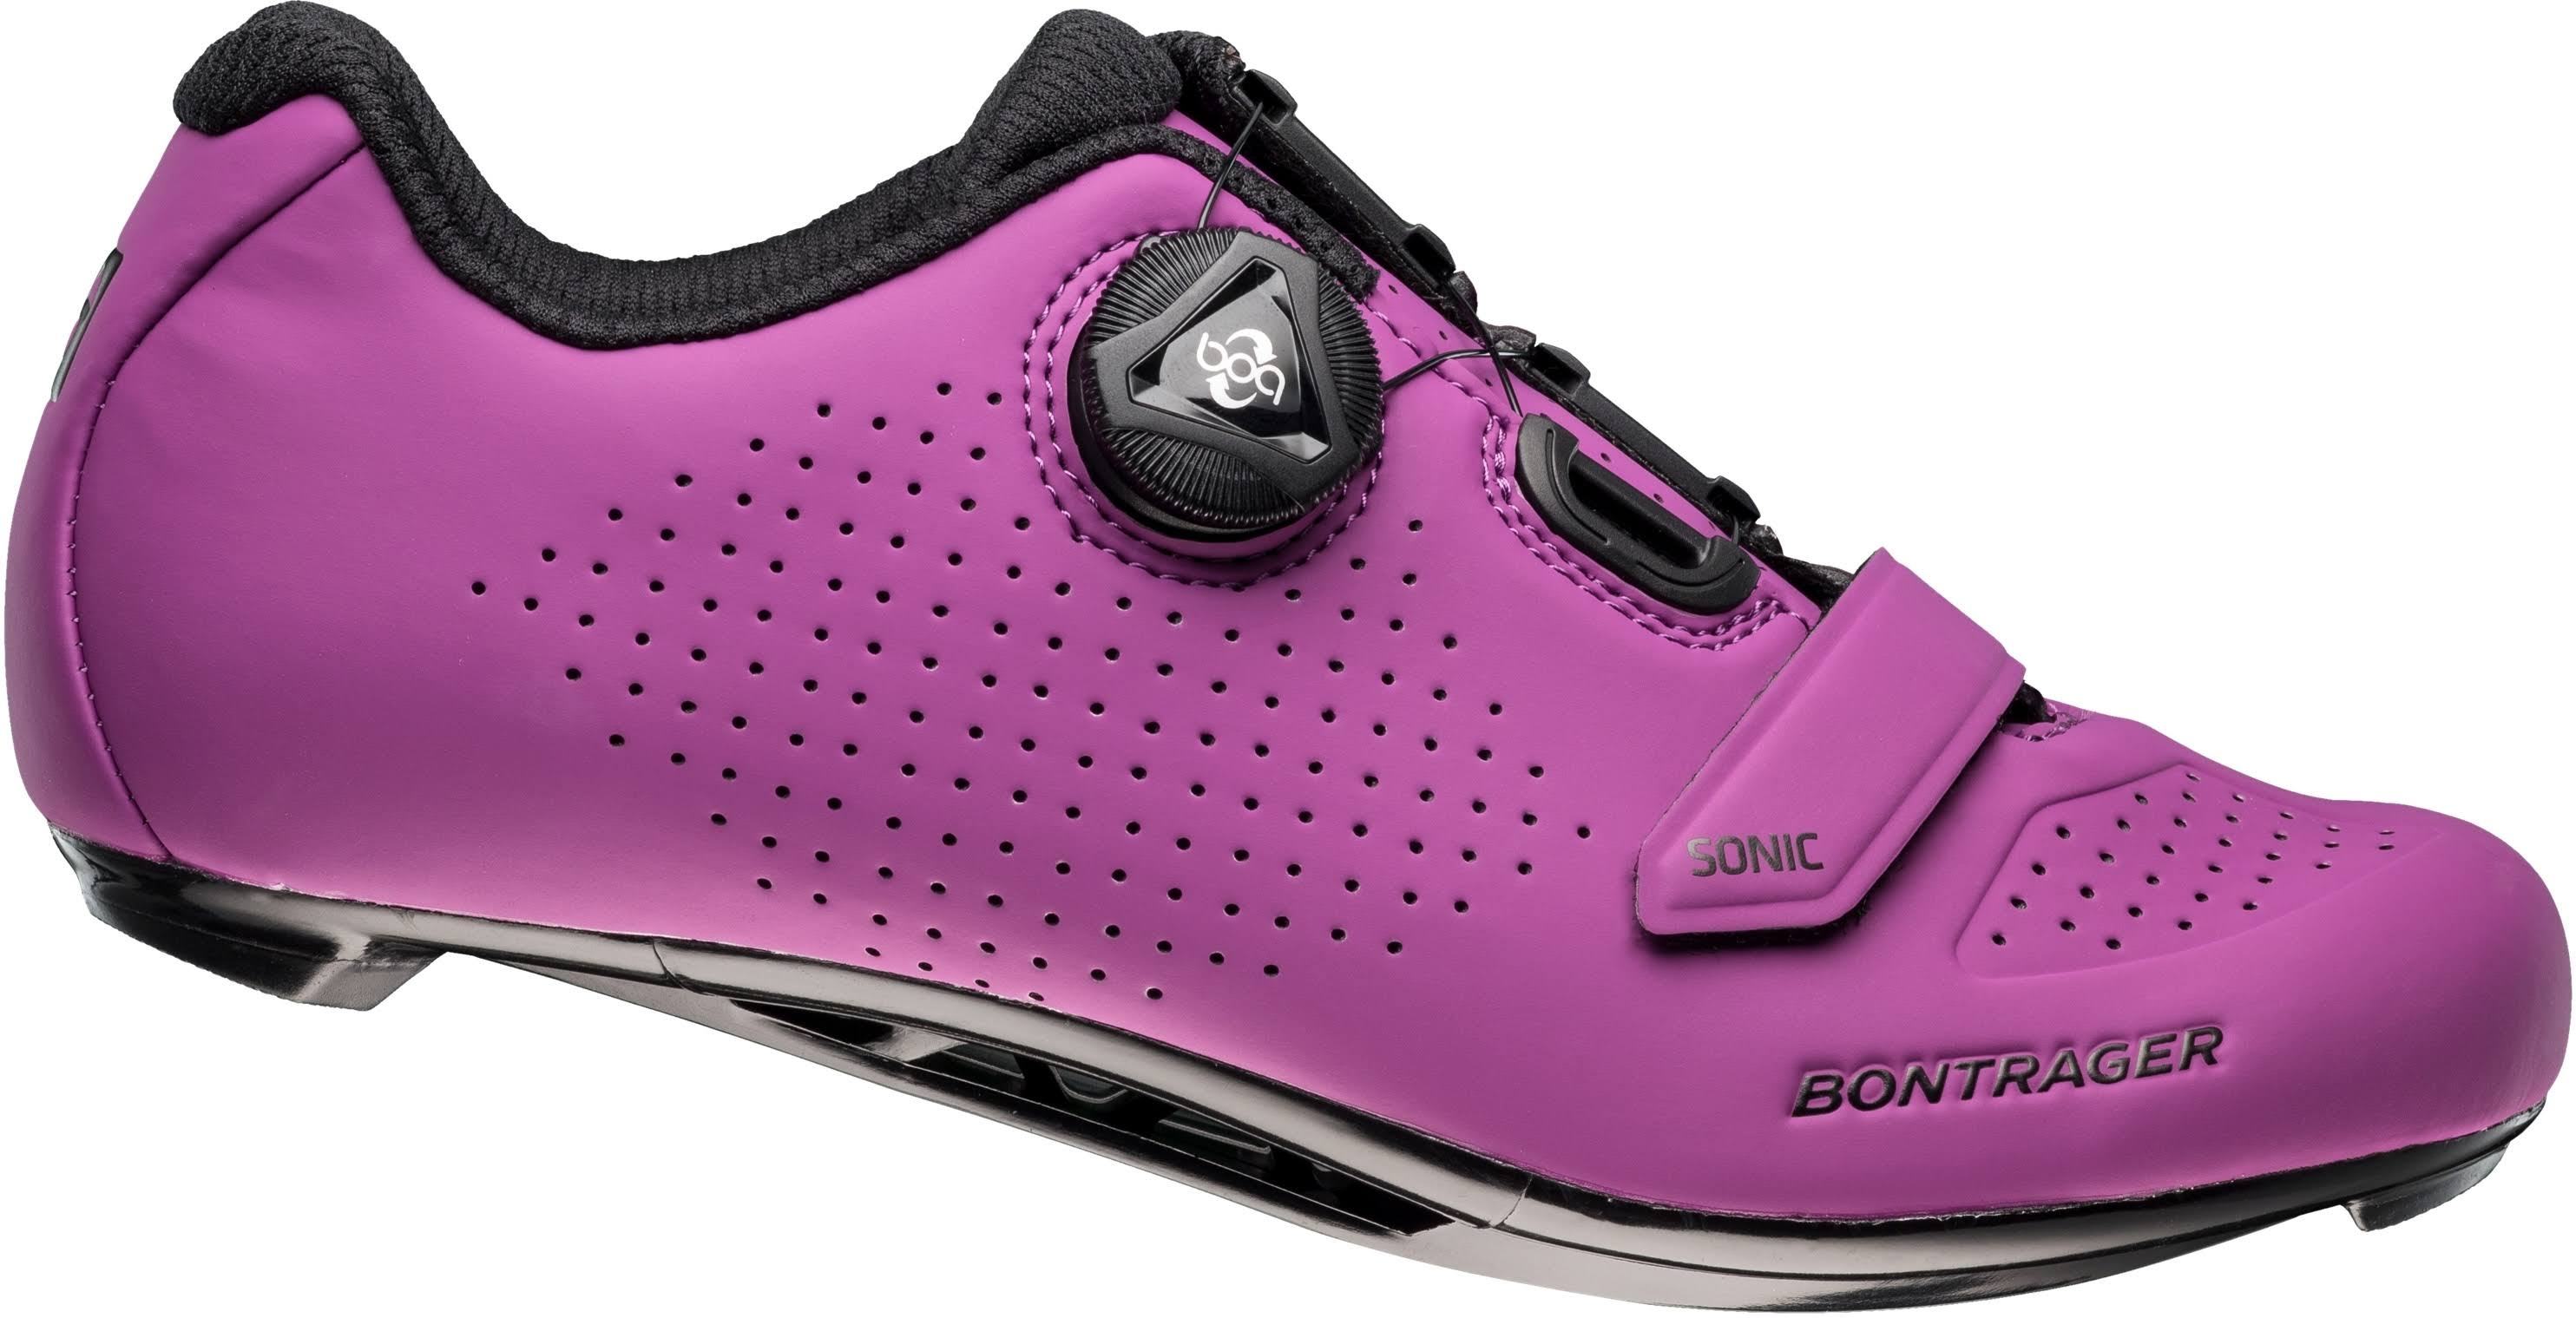 Bontrager Sonic Women's Road Shoes - Purple